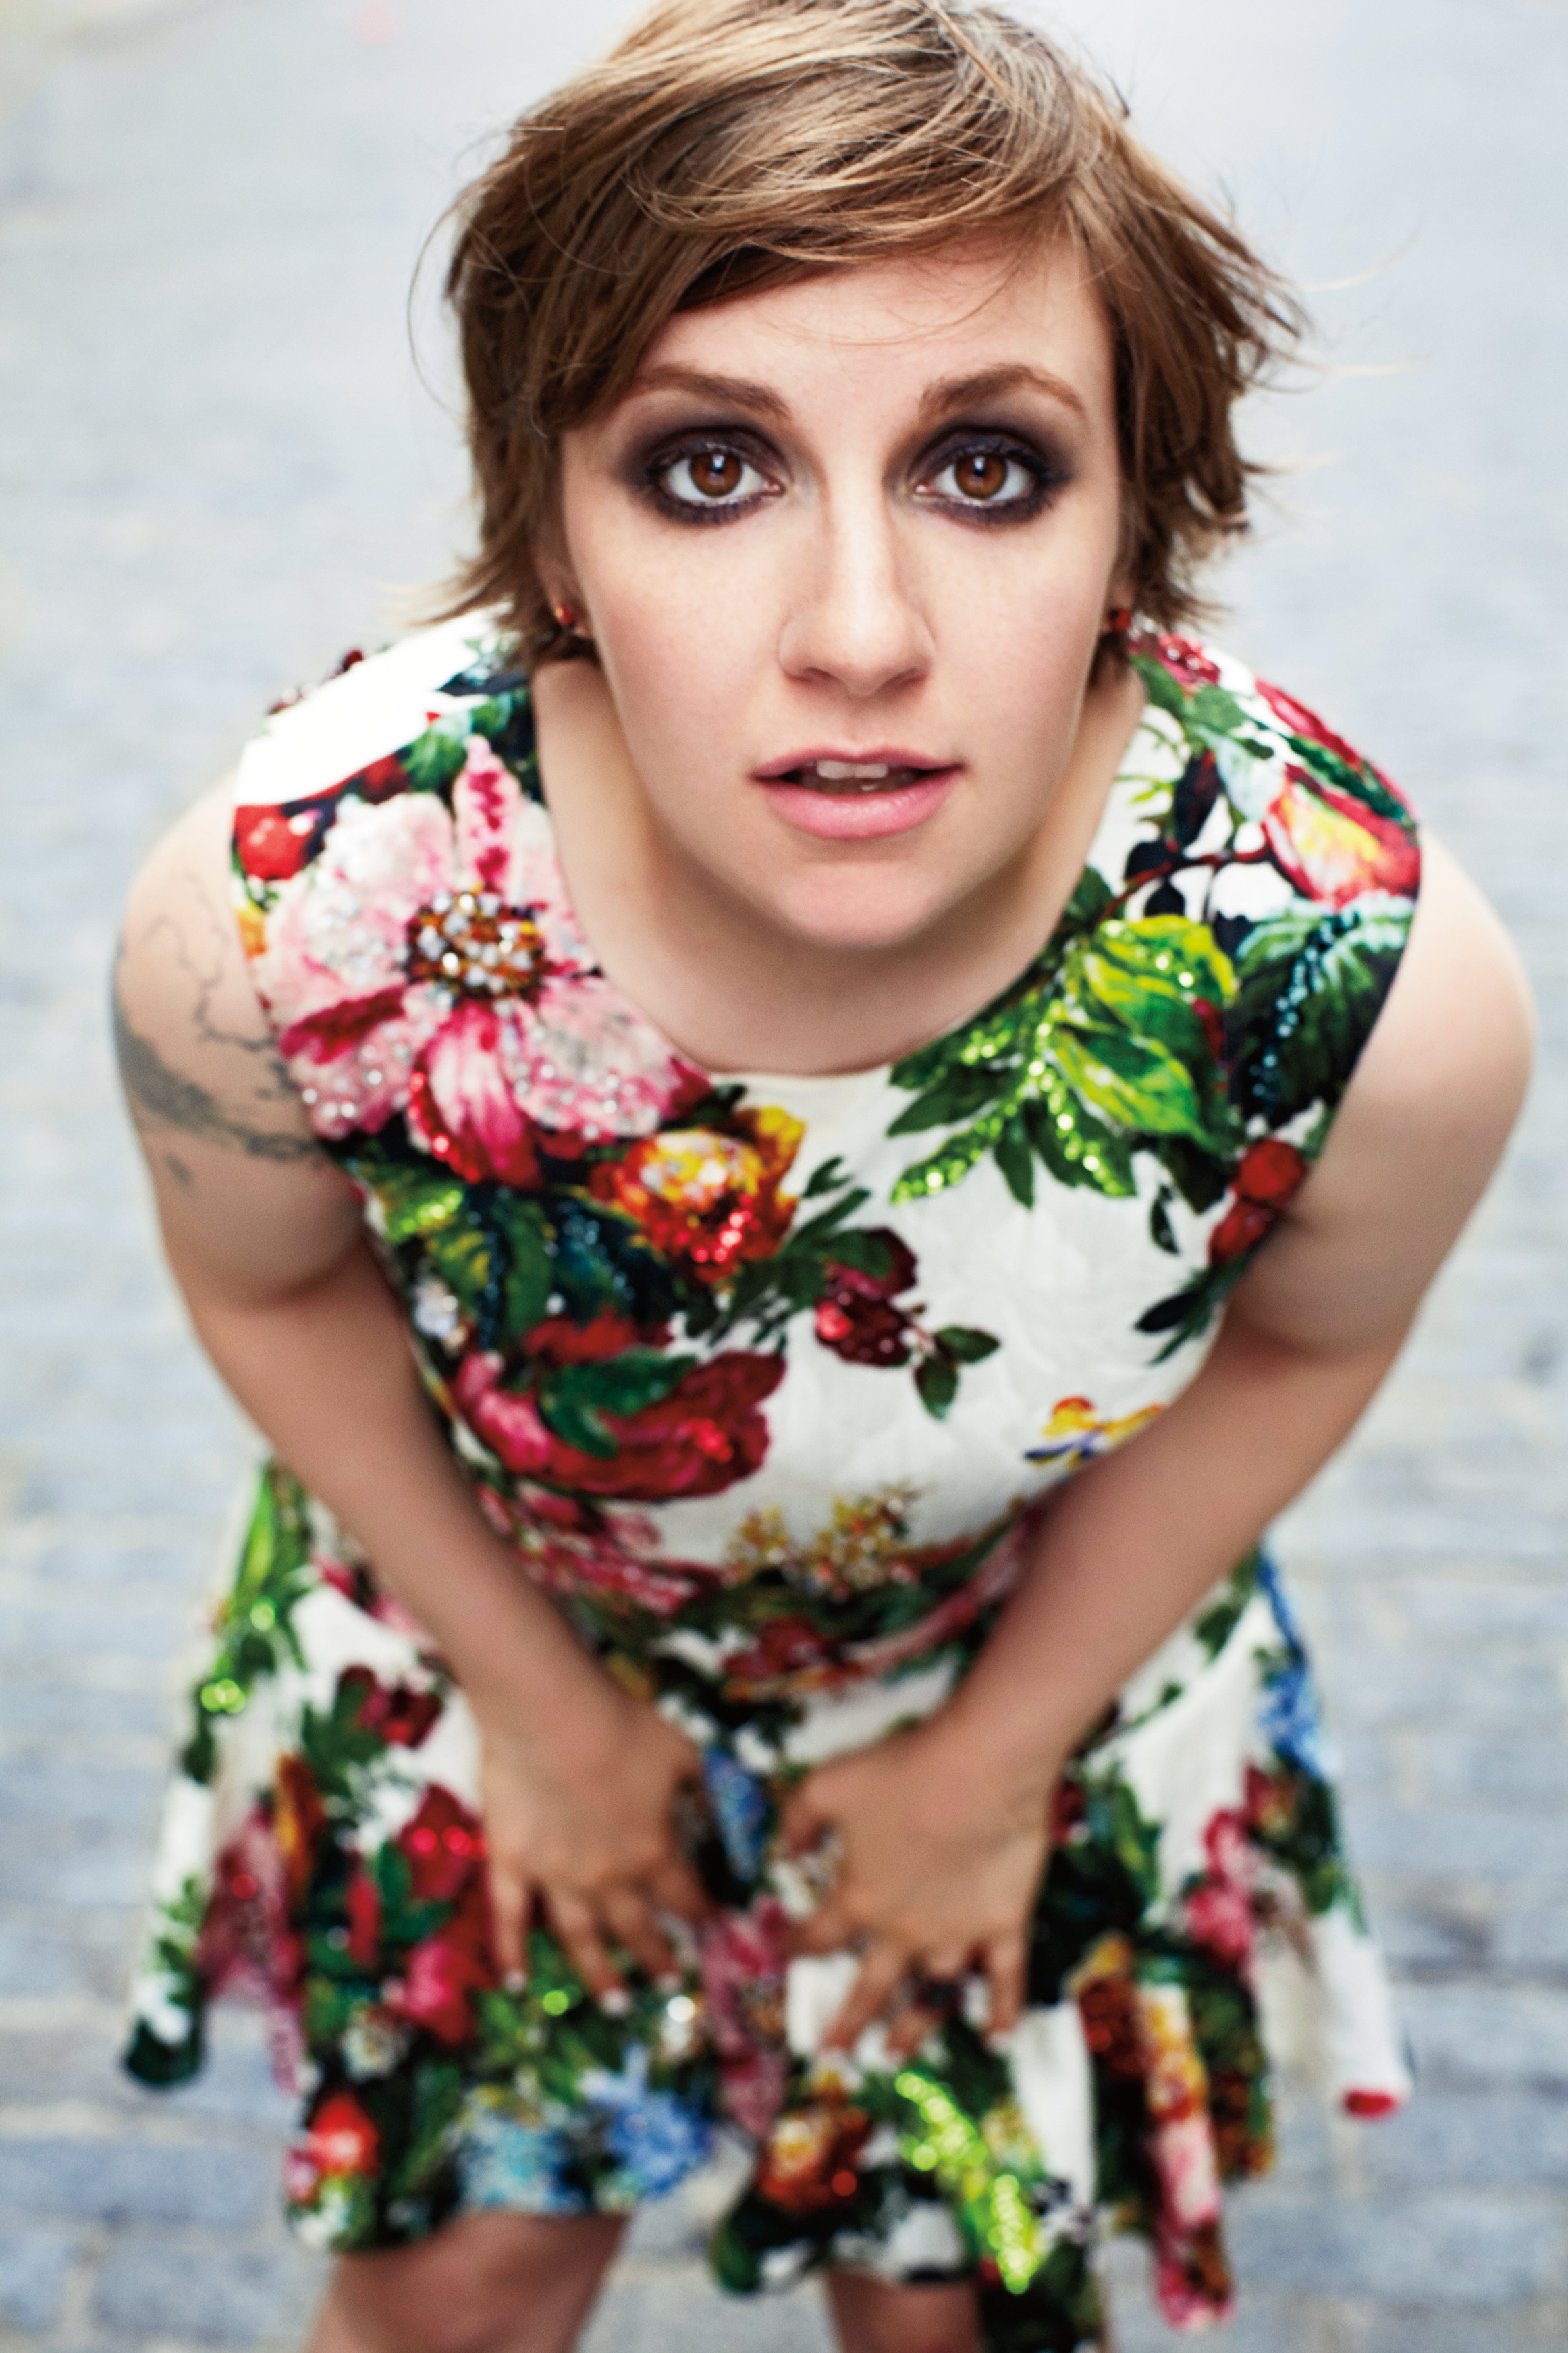 House Of Usher Lena Dunham by Alexei Hay 07